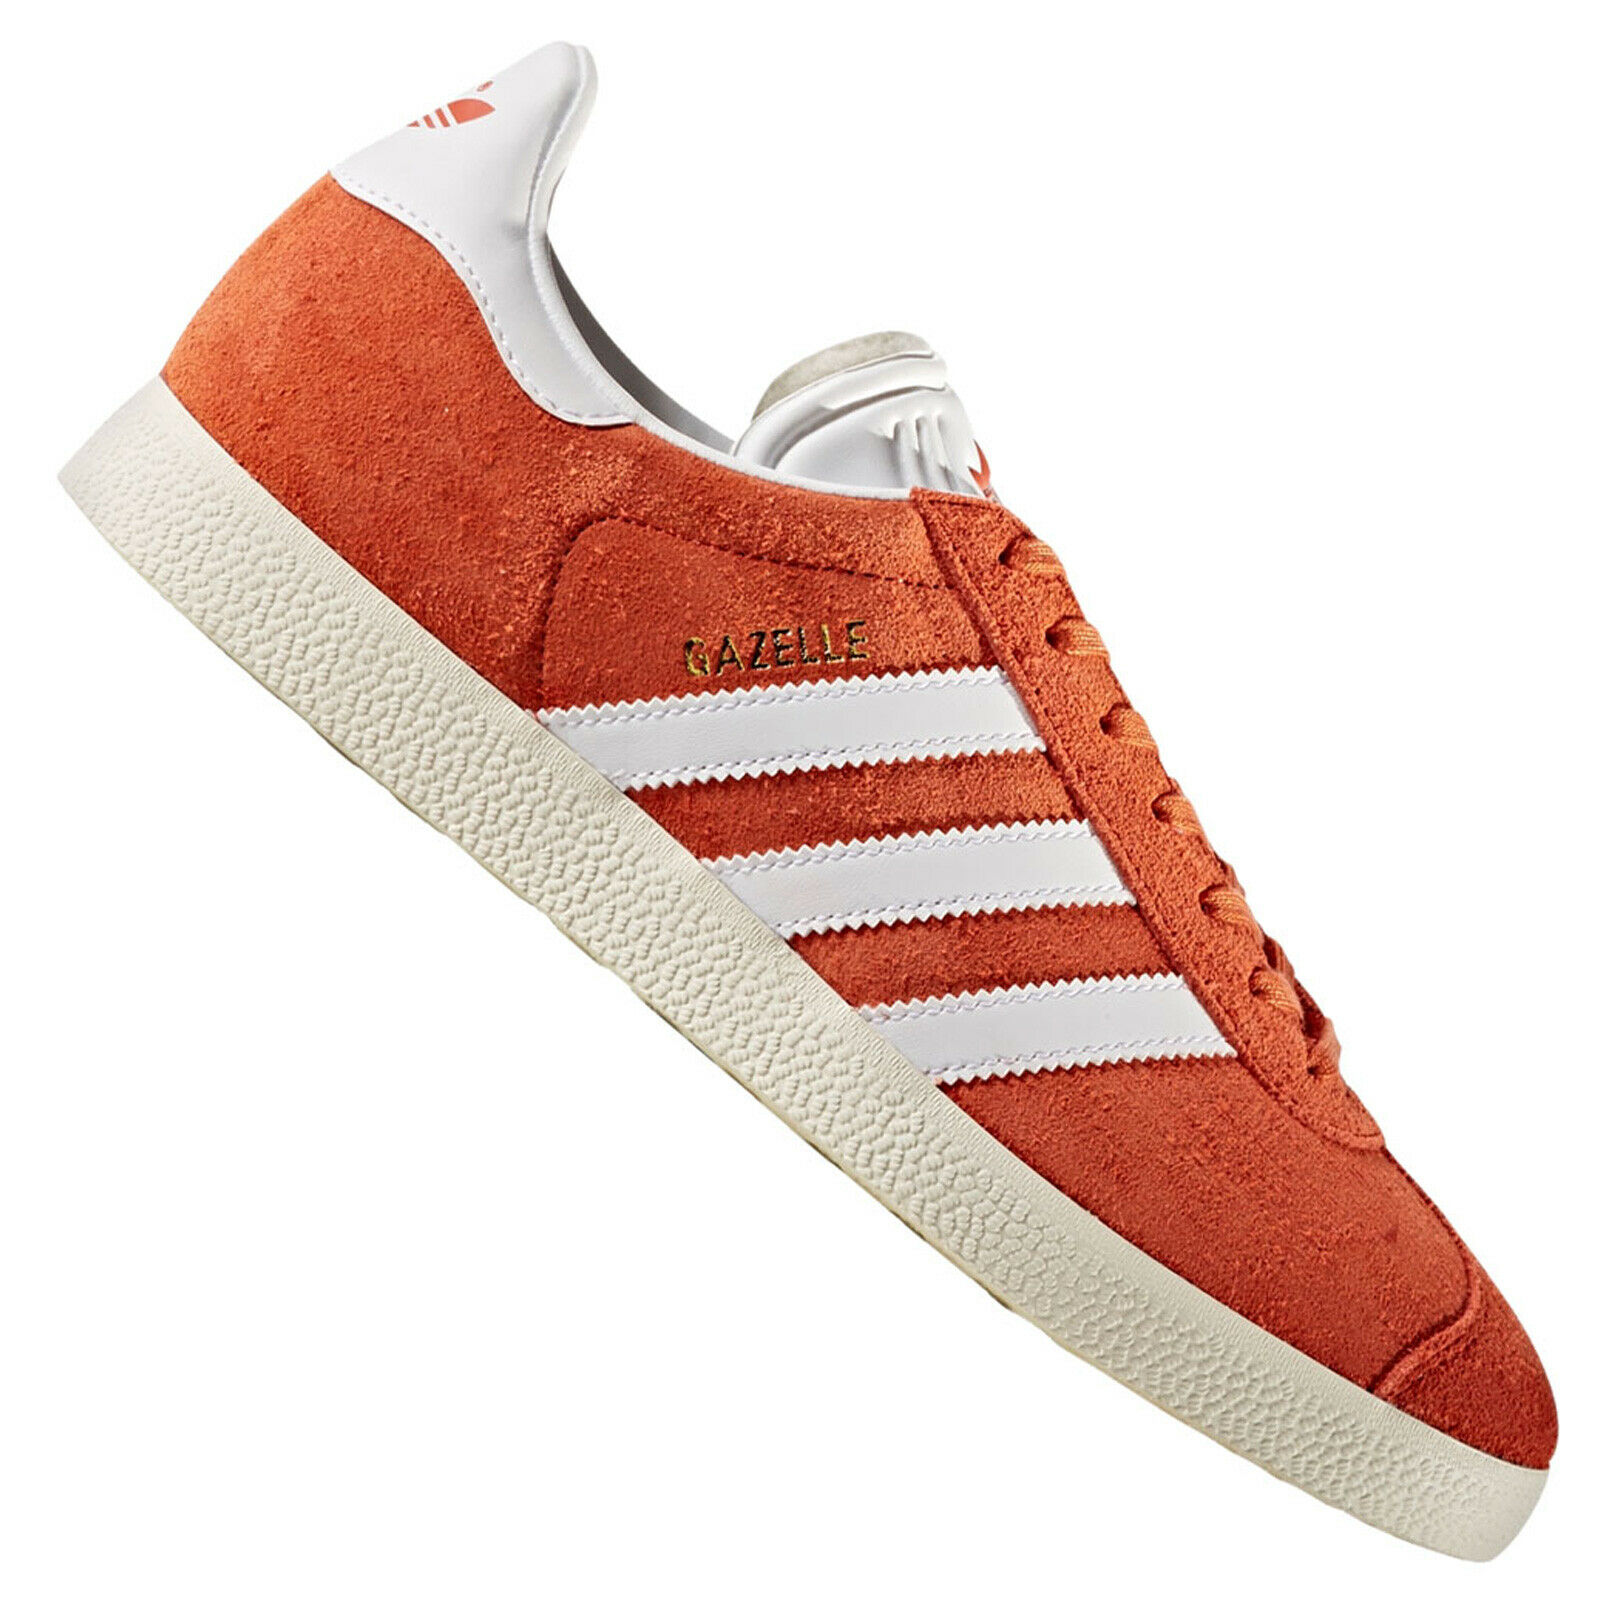 Adidas Originals Gazelle Damen Turnschuhe Turnschuhe Future Harvest Orange Rot